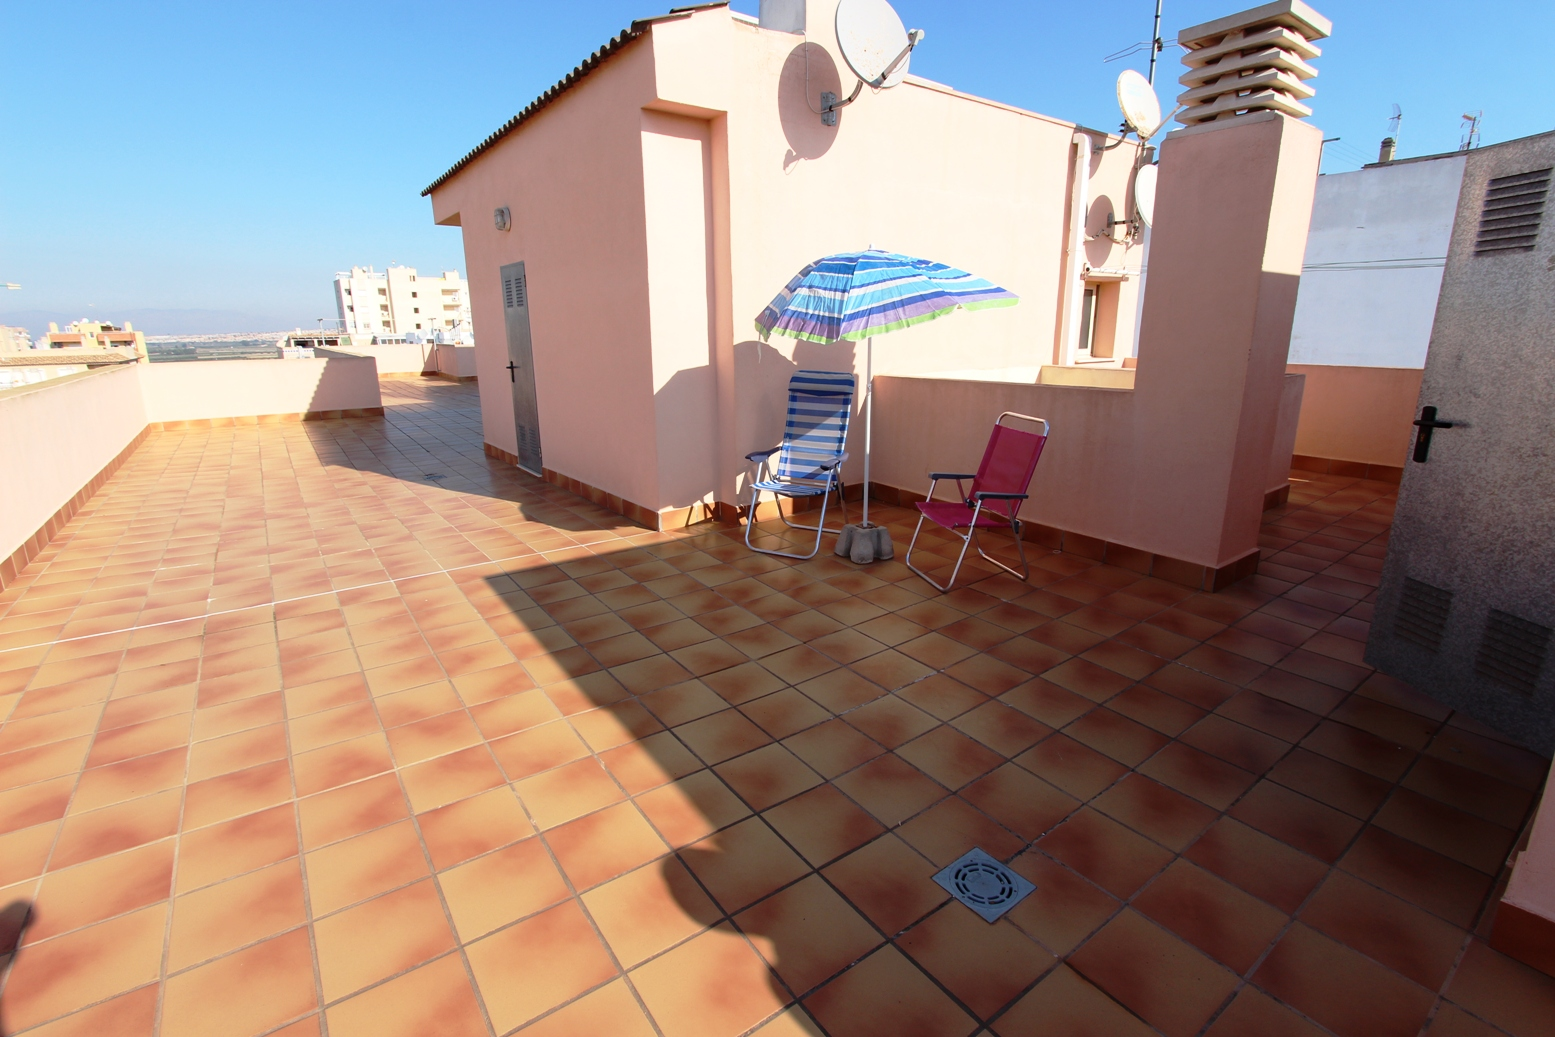 For sale: 3 bedroom apartment / flat in Guardamar del Segura, Costa Blanca